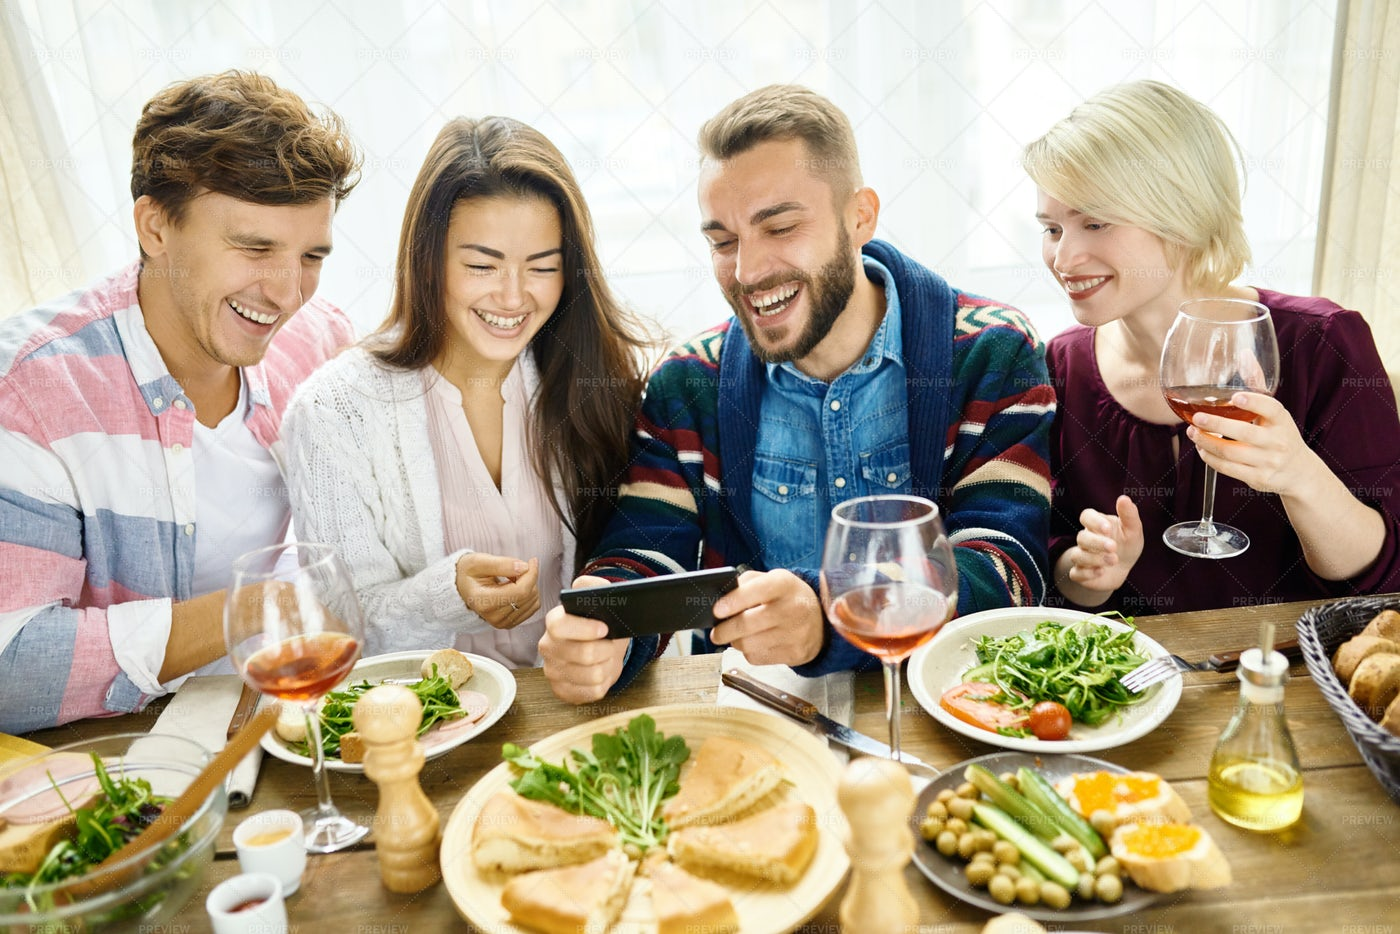 Friends Video Calling At Dinner...: Stock Photos